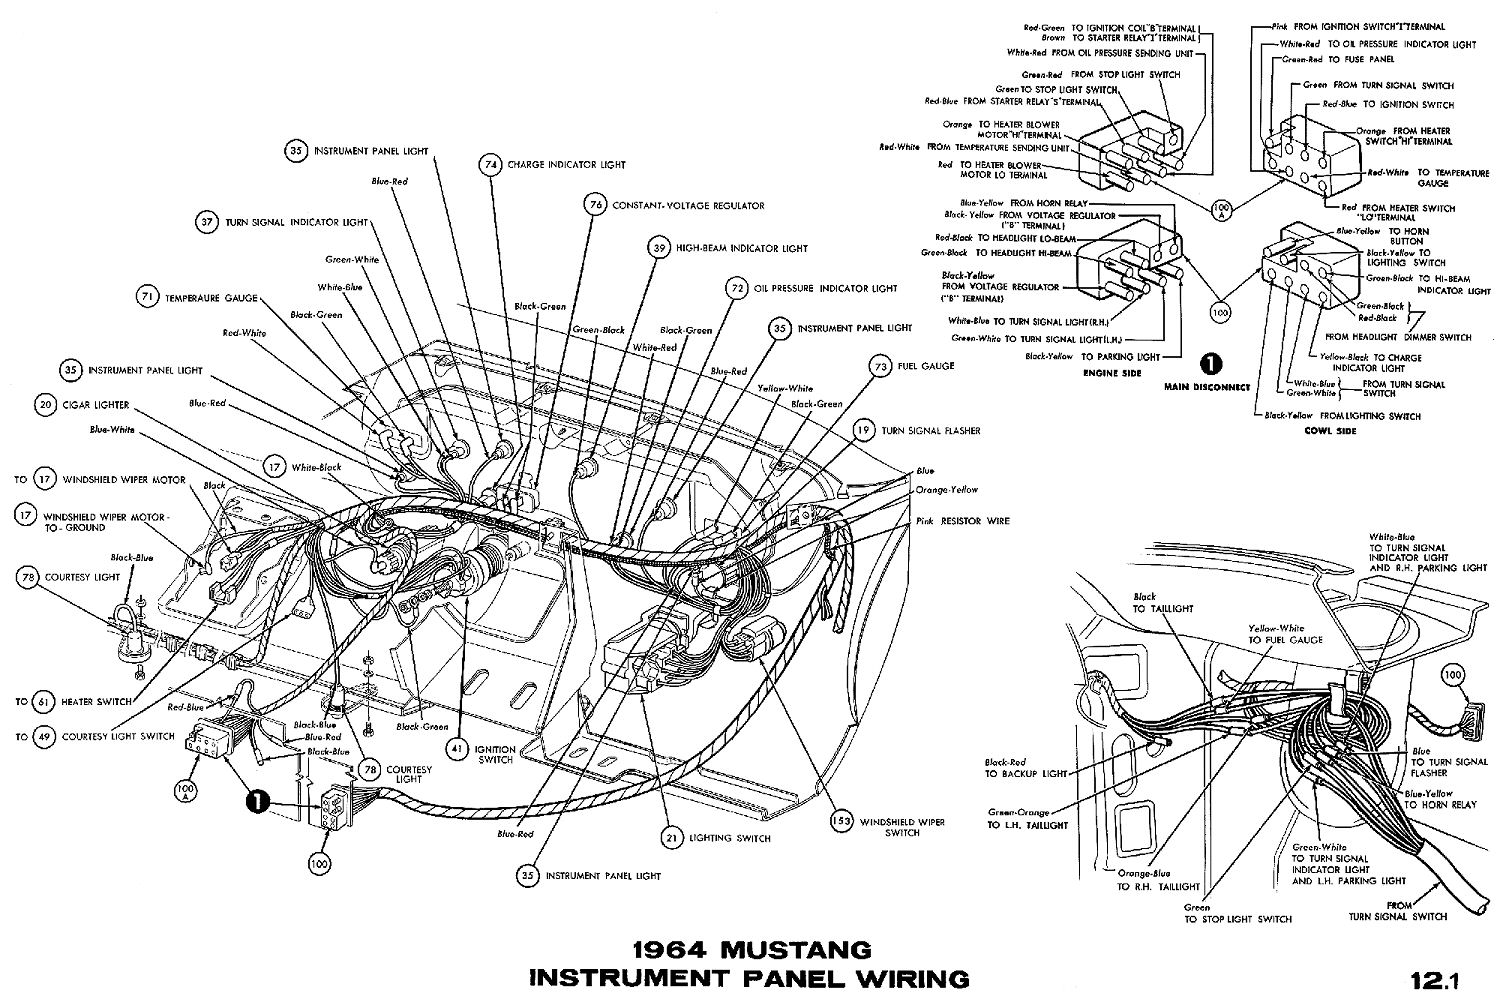 Stop Light Wiring Diagram 1964 Ford Mustang Diagrams Average Joe Restorationinstrument Cluster Connections